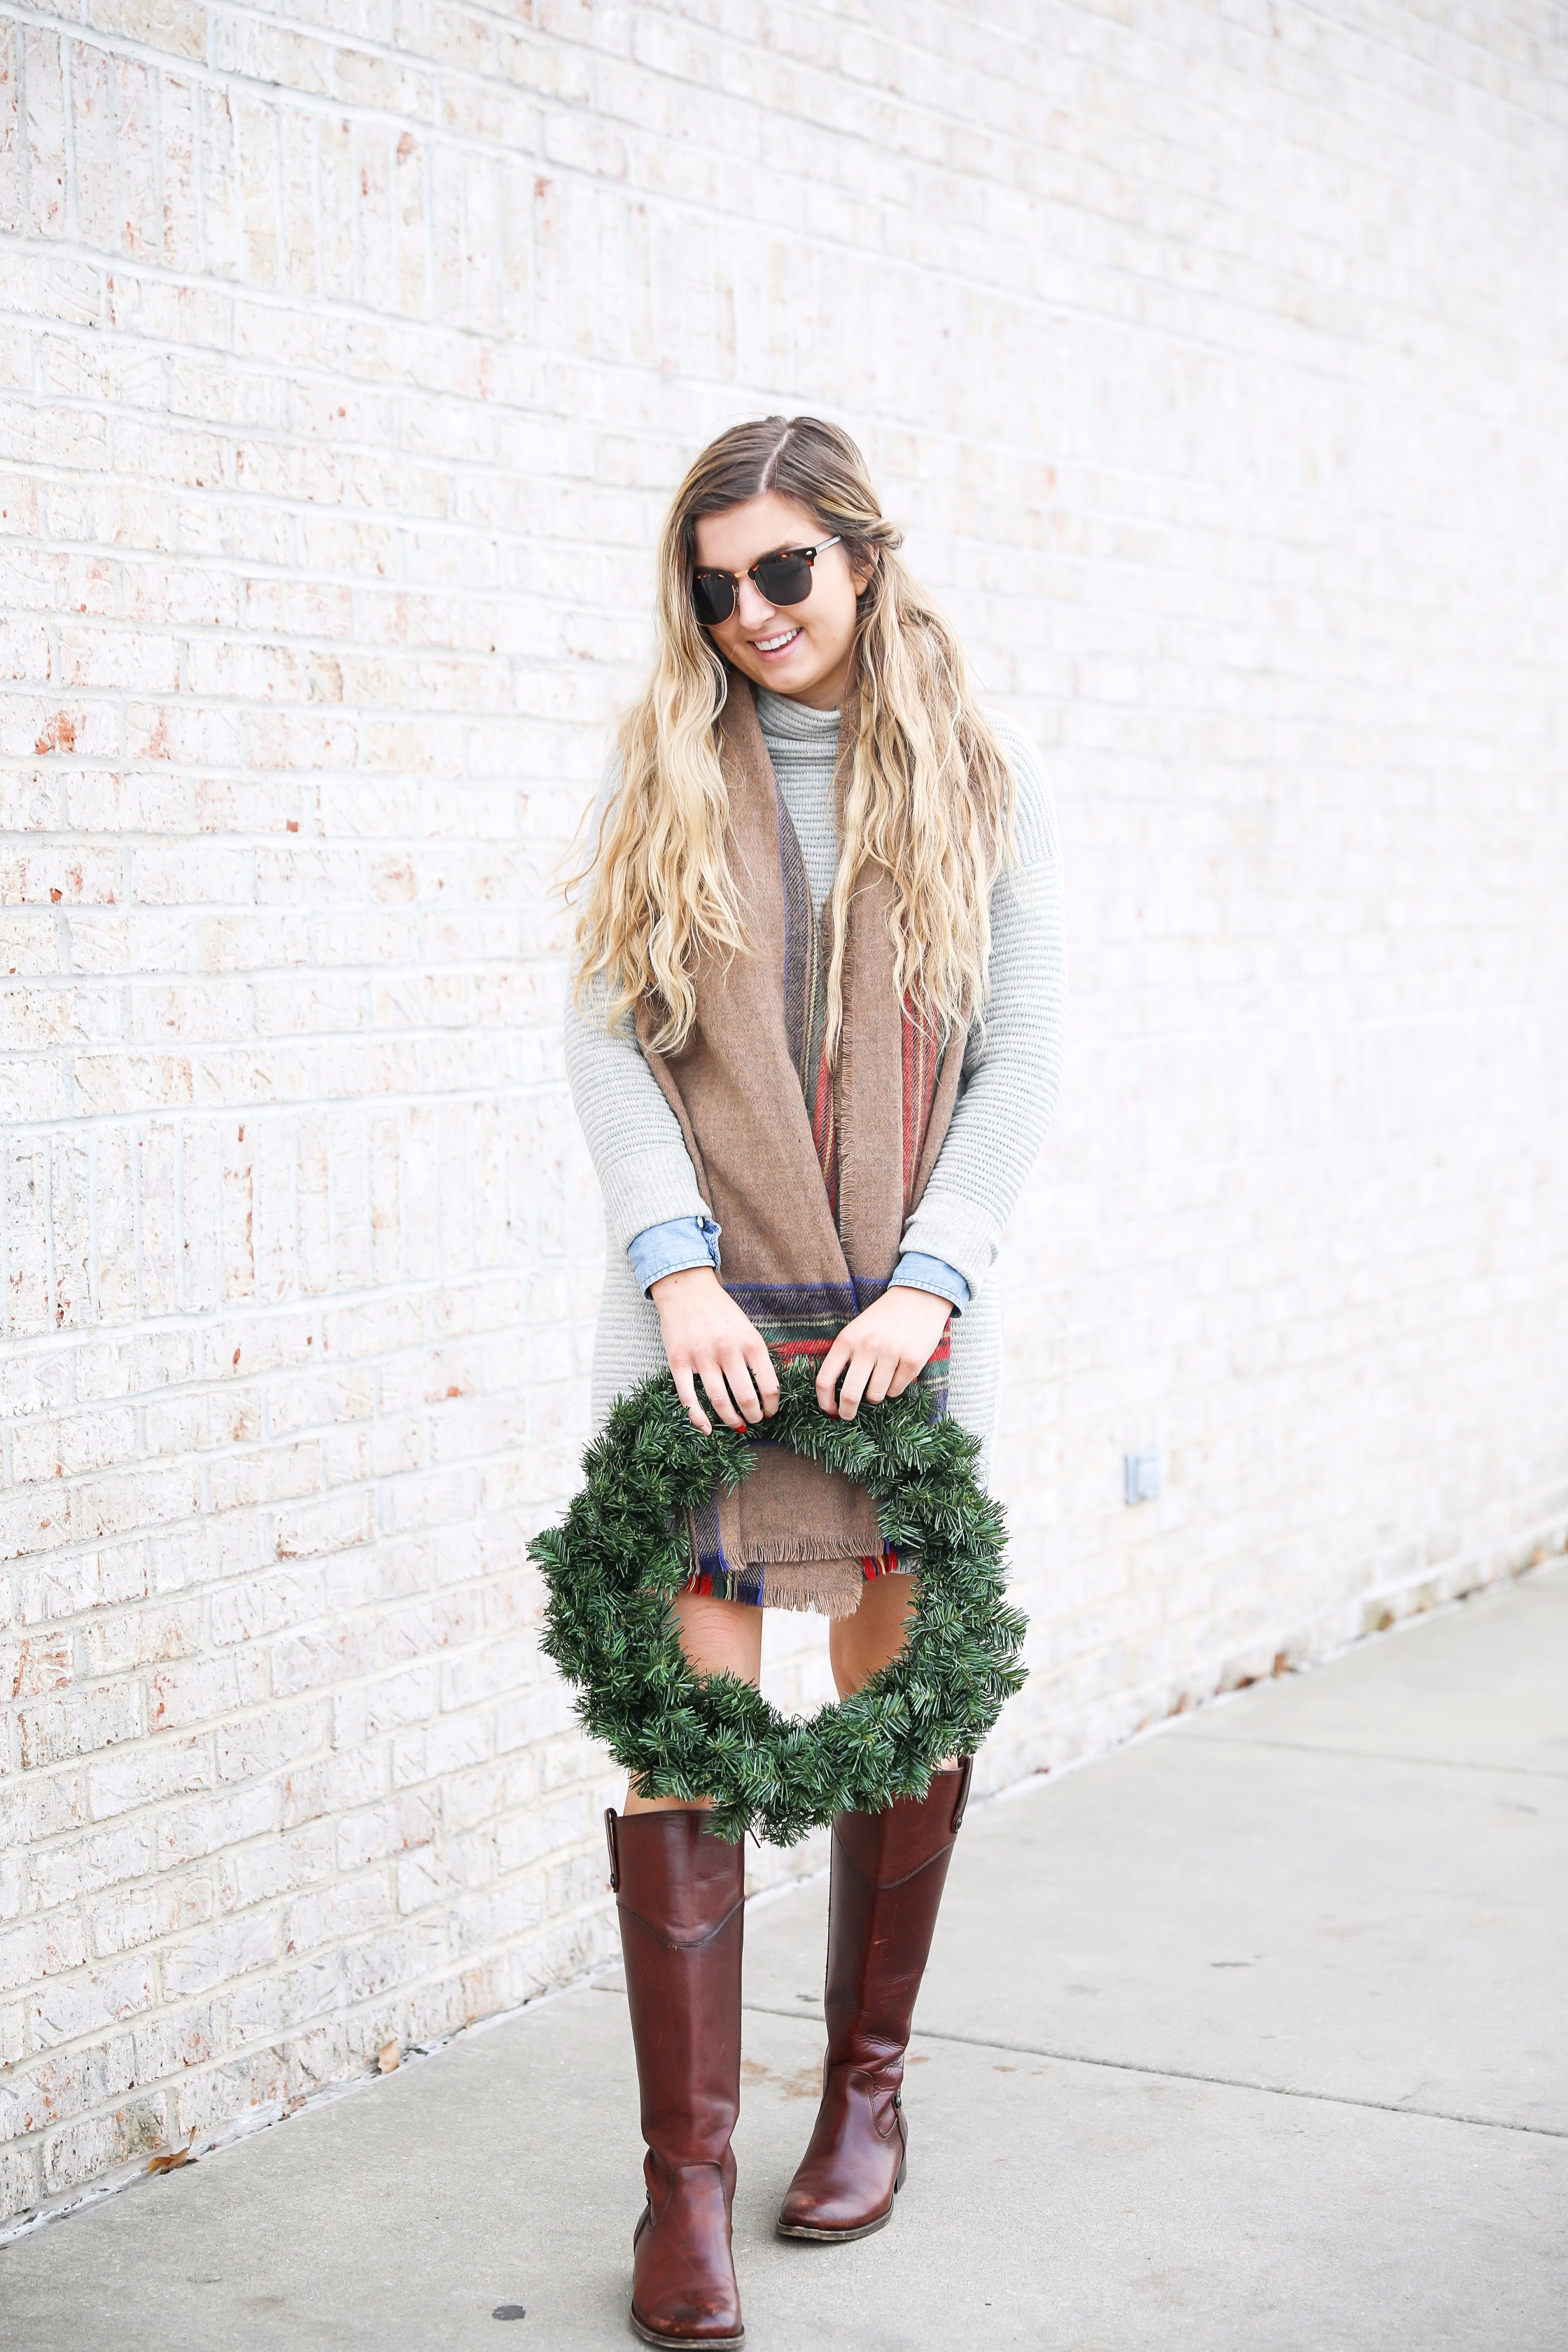 Grey sweater dress layered wtih a chambray top and plaid scarf! Paired with my favorite riding boots by frye boots! Photos taken with a christmas wreath. Christmas wreath photos by lauren lindmark on the blog daily dose of charm